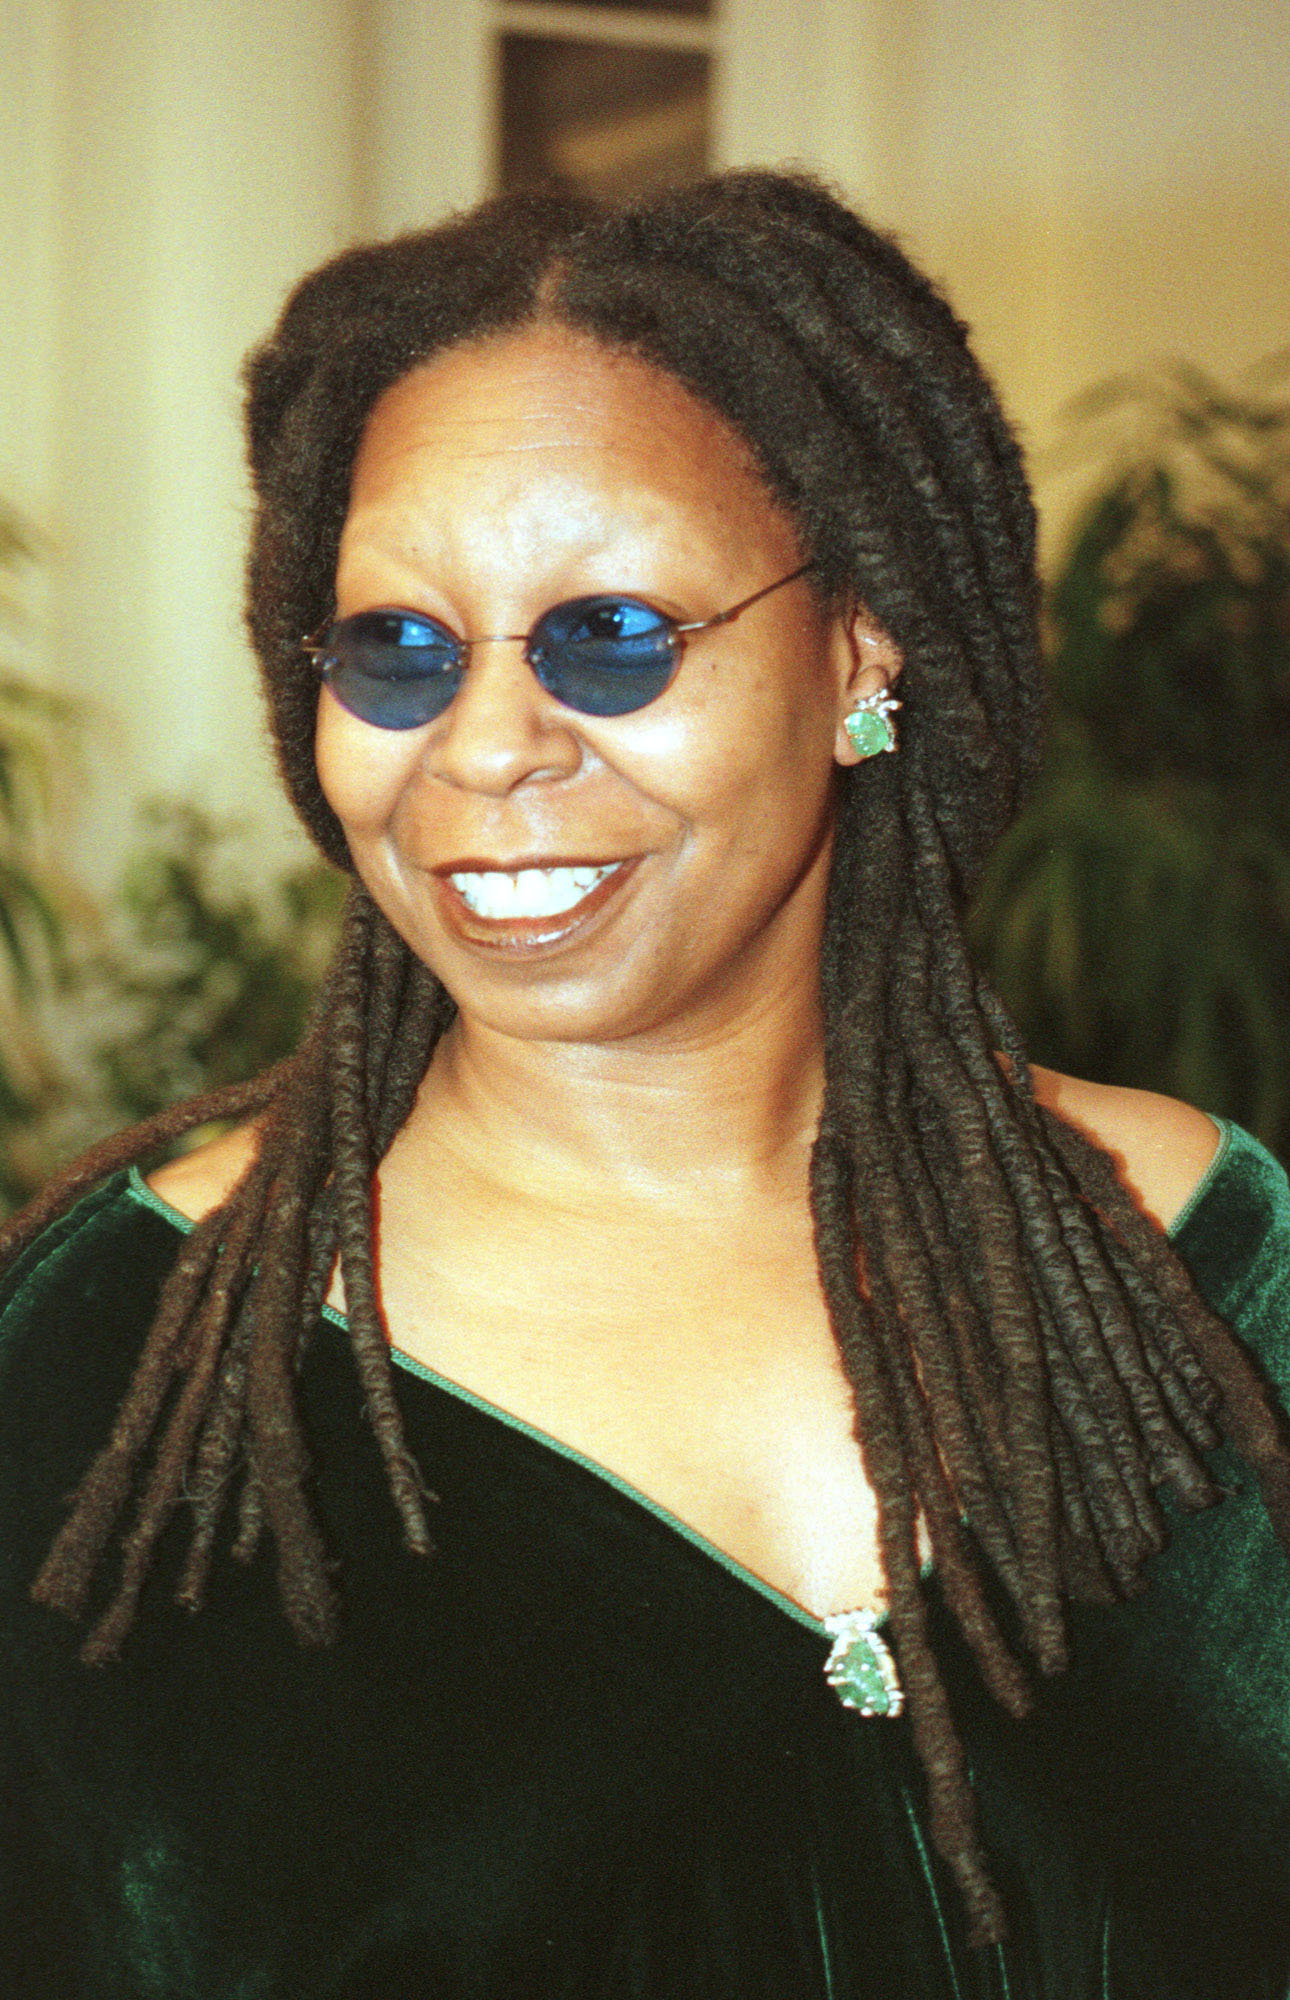 whoopi goldberg imdbwhoopi goldberg фильмы, whoopi goldberg 2016, whoopi goldberg movies, whoopi goldberg instagram, whoopi goldberg oscar, whoopi goldberg wiki, whoopi goldberg daughter, whoopi goldberg husband, whoopi goldberg book, whoopi goldberg ghost, whoopi goldberg sister act, whoopi goldberg gif, whoopi goldberg 2017, whoopi goldberg song, whoopi goldberg trump, whoopi goldberg graham norton, whoopi goldberg brows, whoopi goldberg imdb, whoopi goldberg real name, whoopi goldberg fan mail